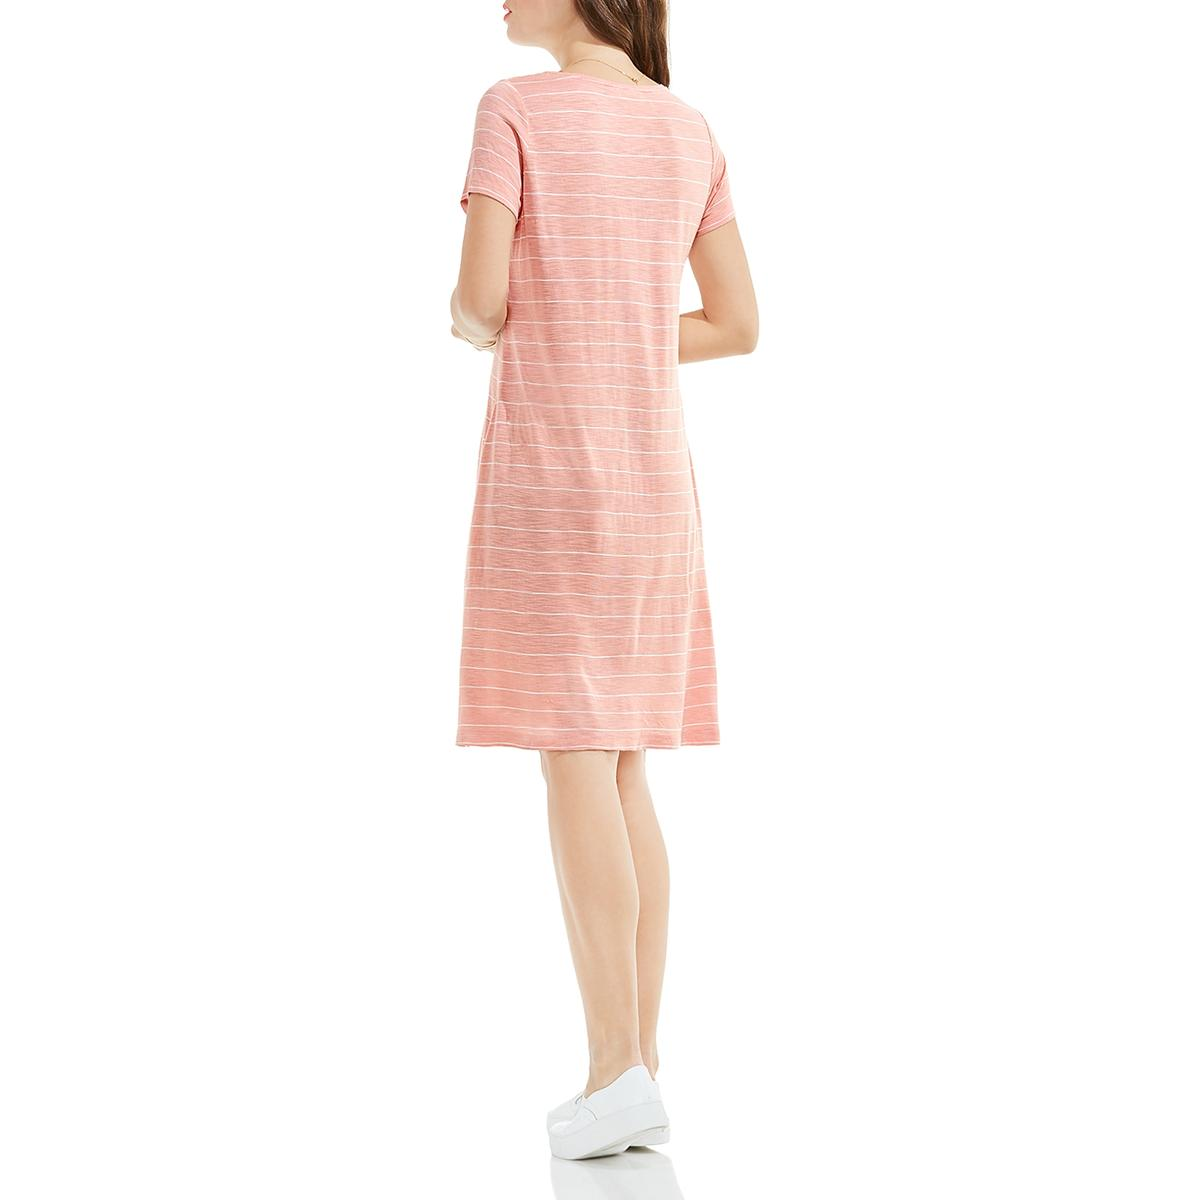 Two By Vince Camuto Womens Short Sleeves Knee Length T Shirt Dress